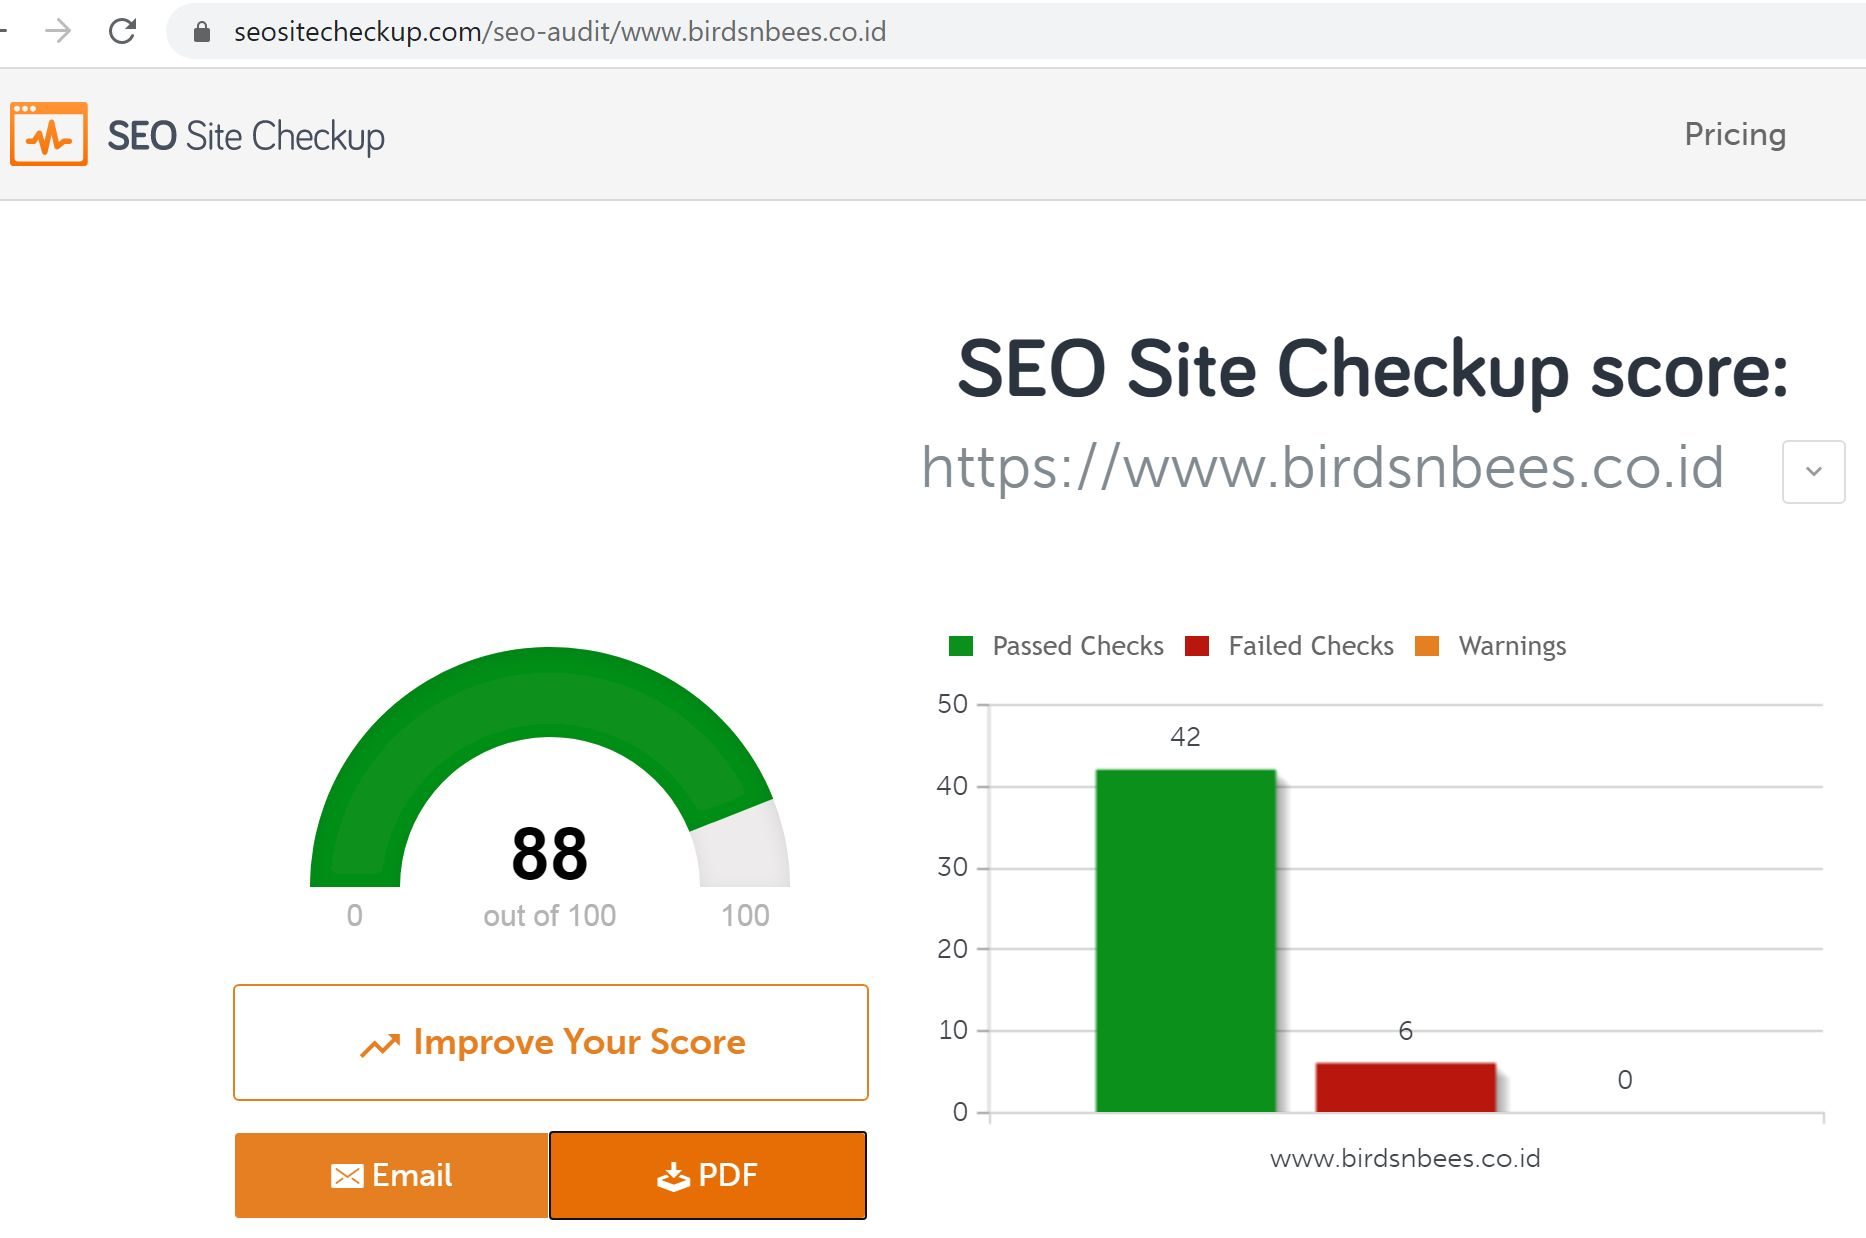 SEO and Website Audit oleh SEOSiteCheckup.com